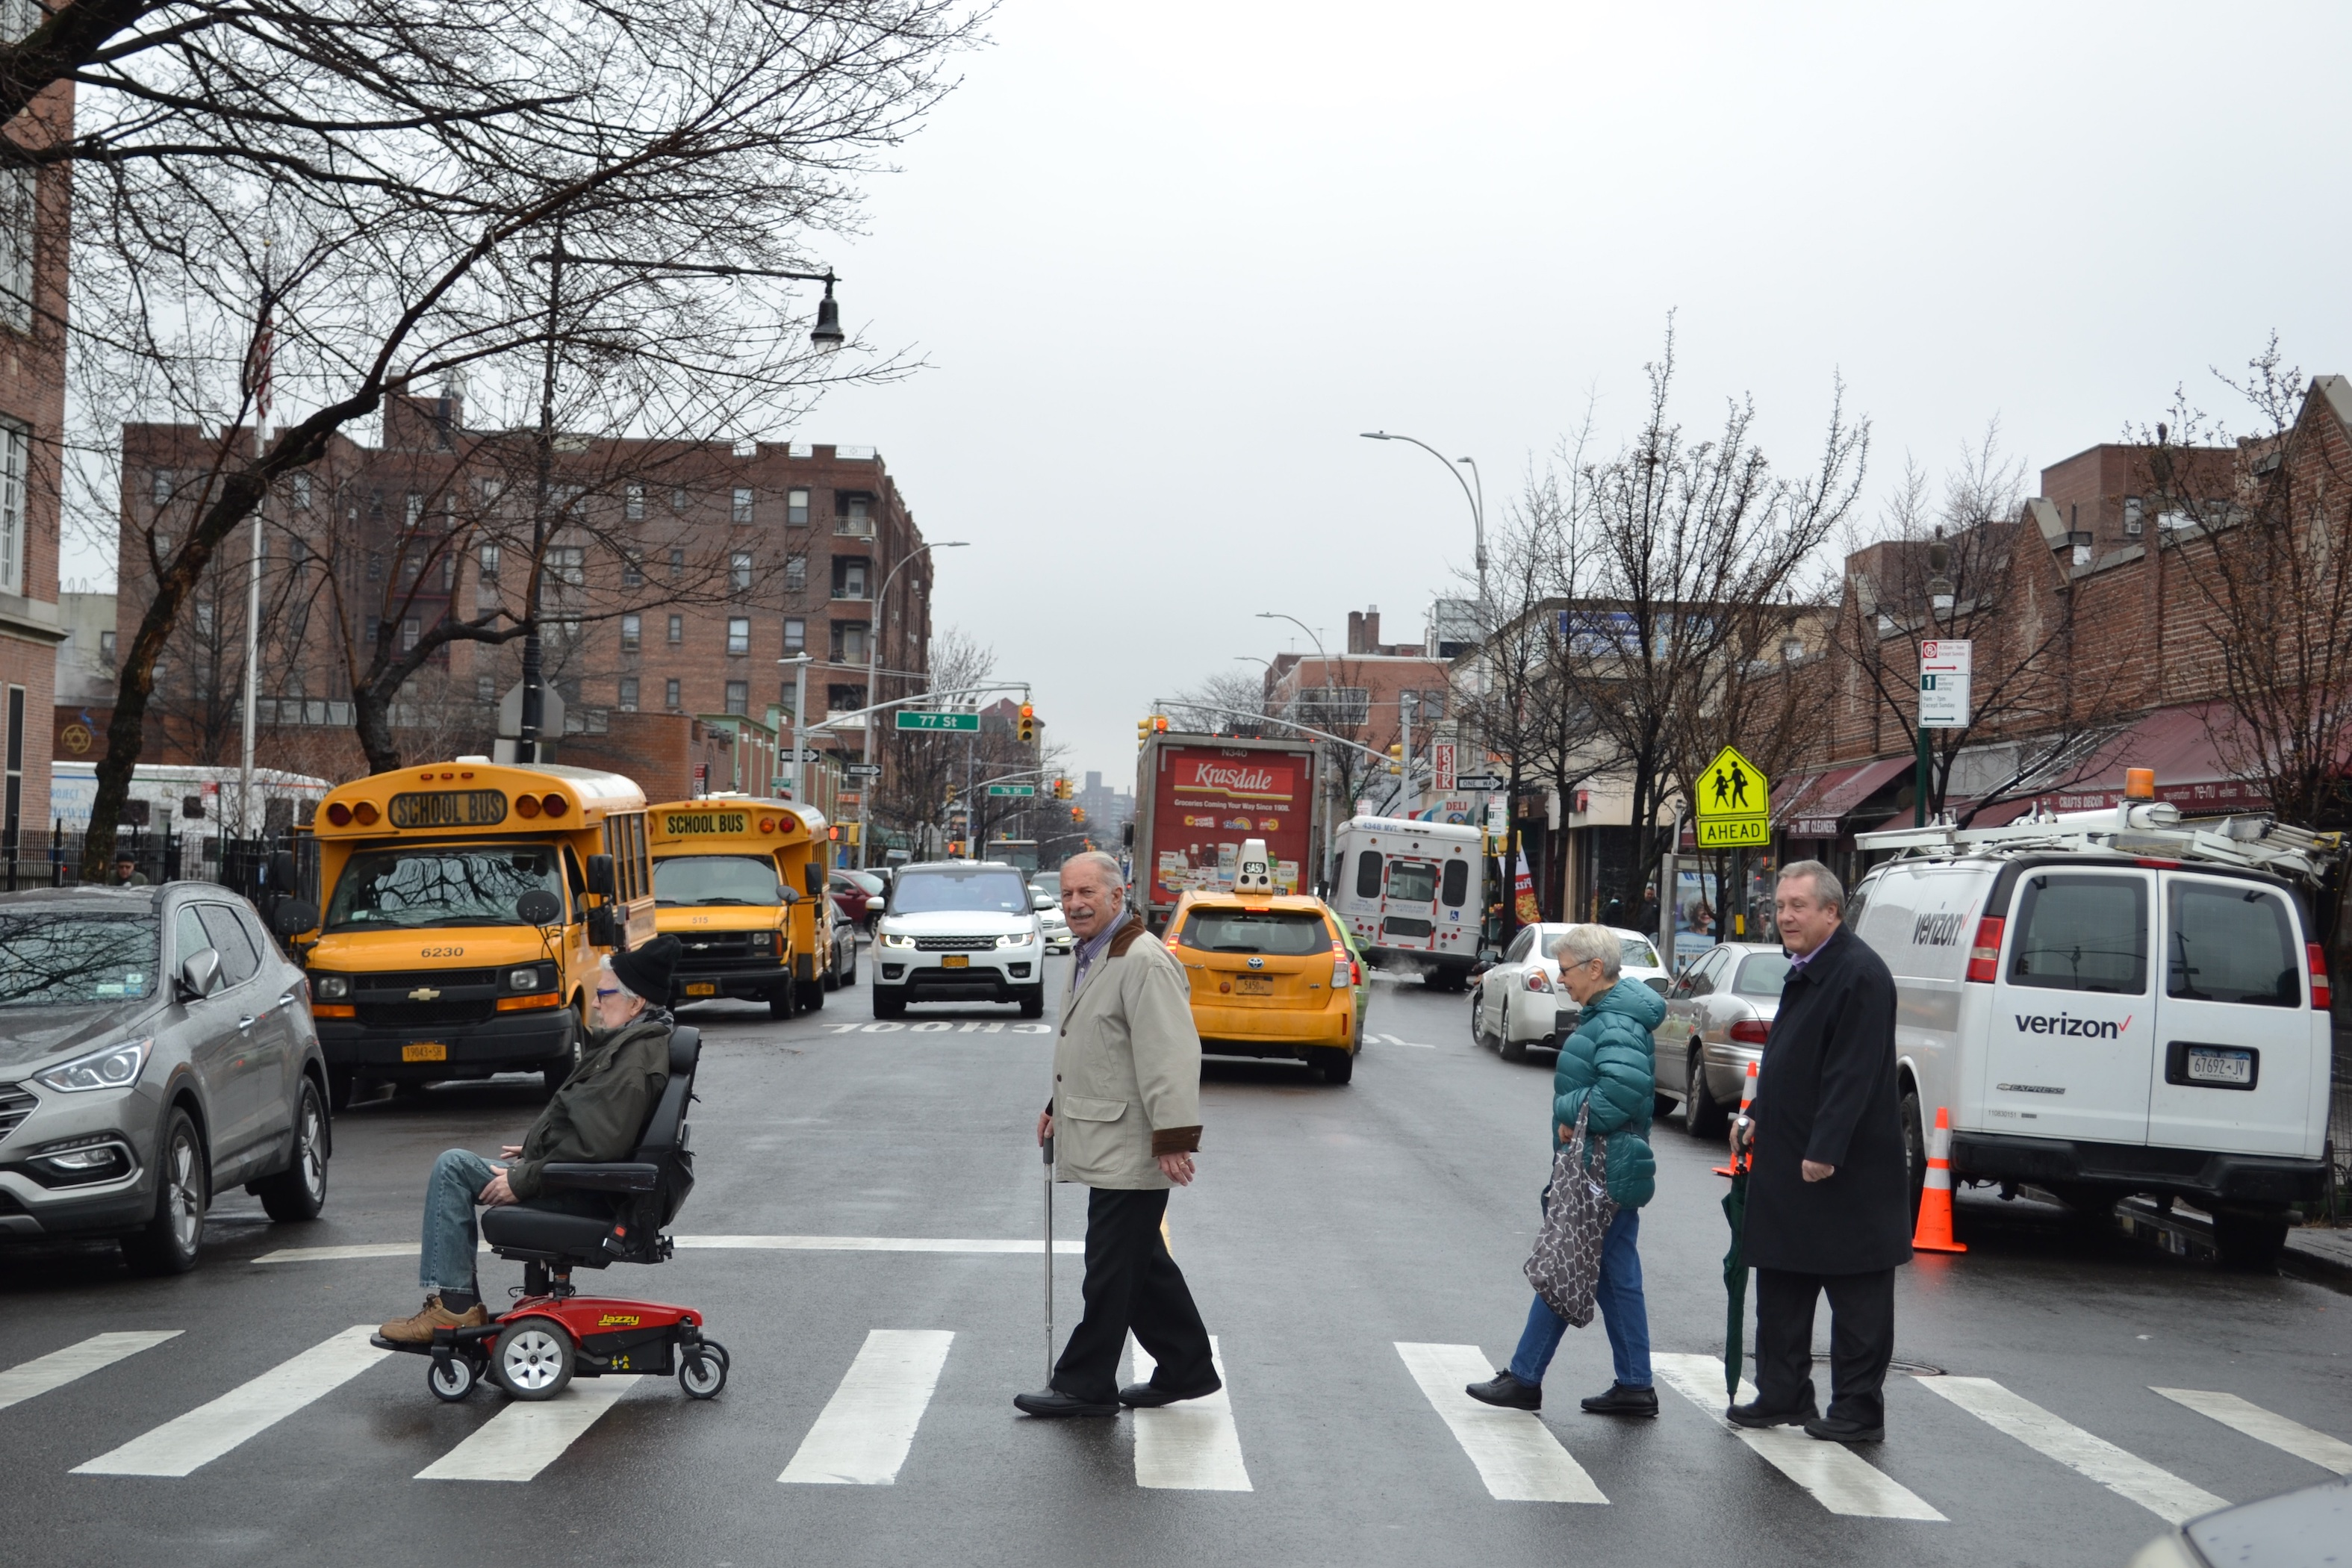 David Sargent, Joseph Ricevuto, Jacqueline Sung, and NYC Council Member Daniel Dromm cross 37th Avenue in Jackson Heights.